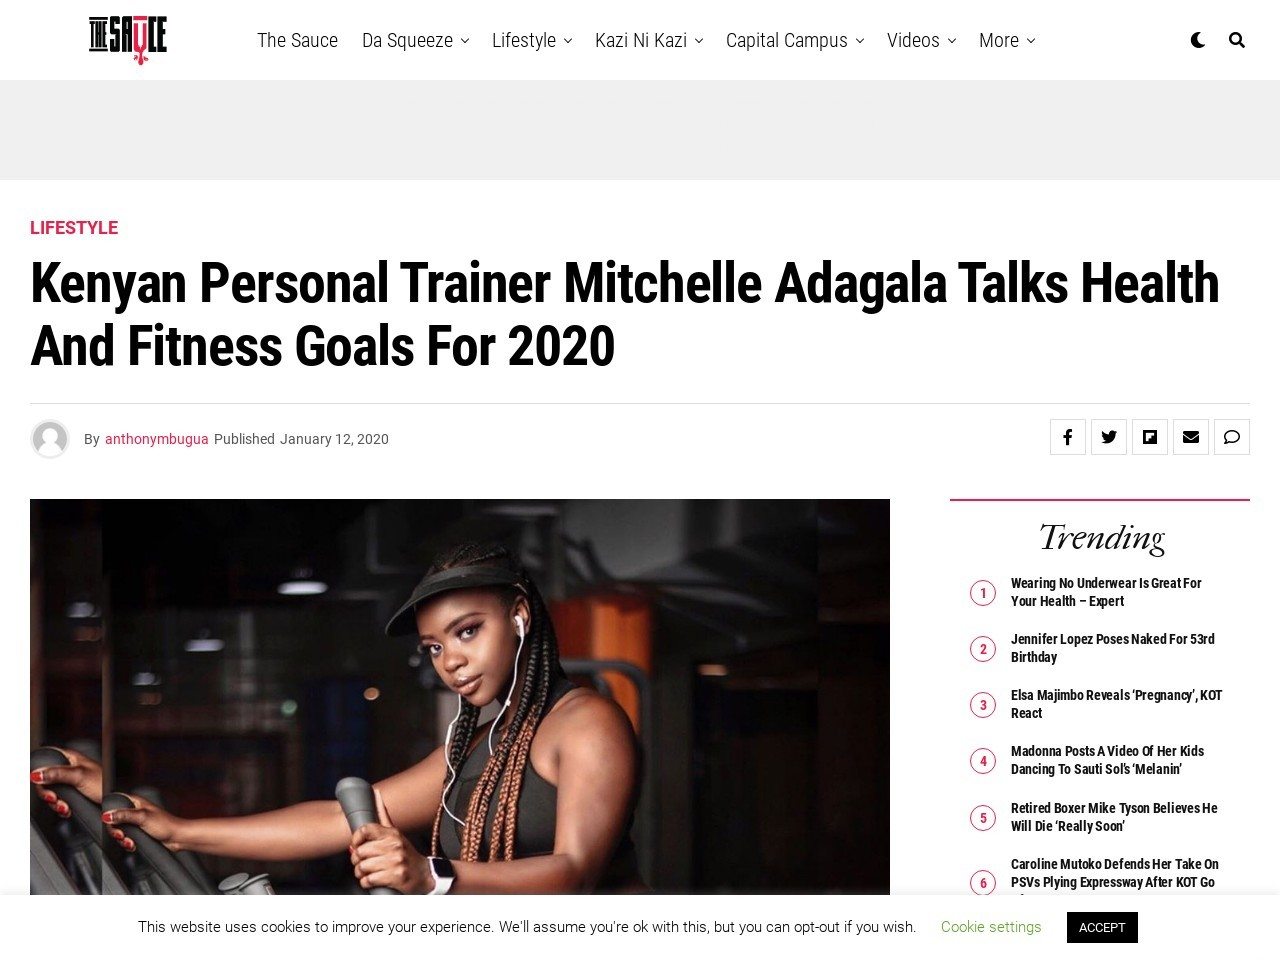 Kenyan personal trainer Mitchelle Adagala talks health and fitness goals for 2020